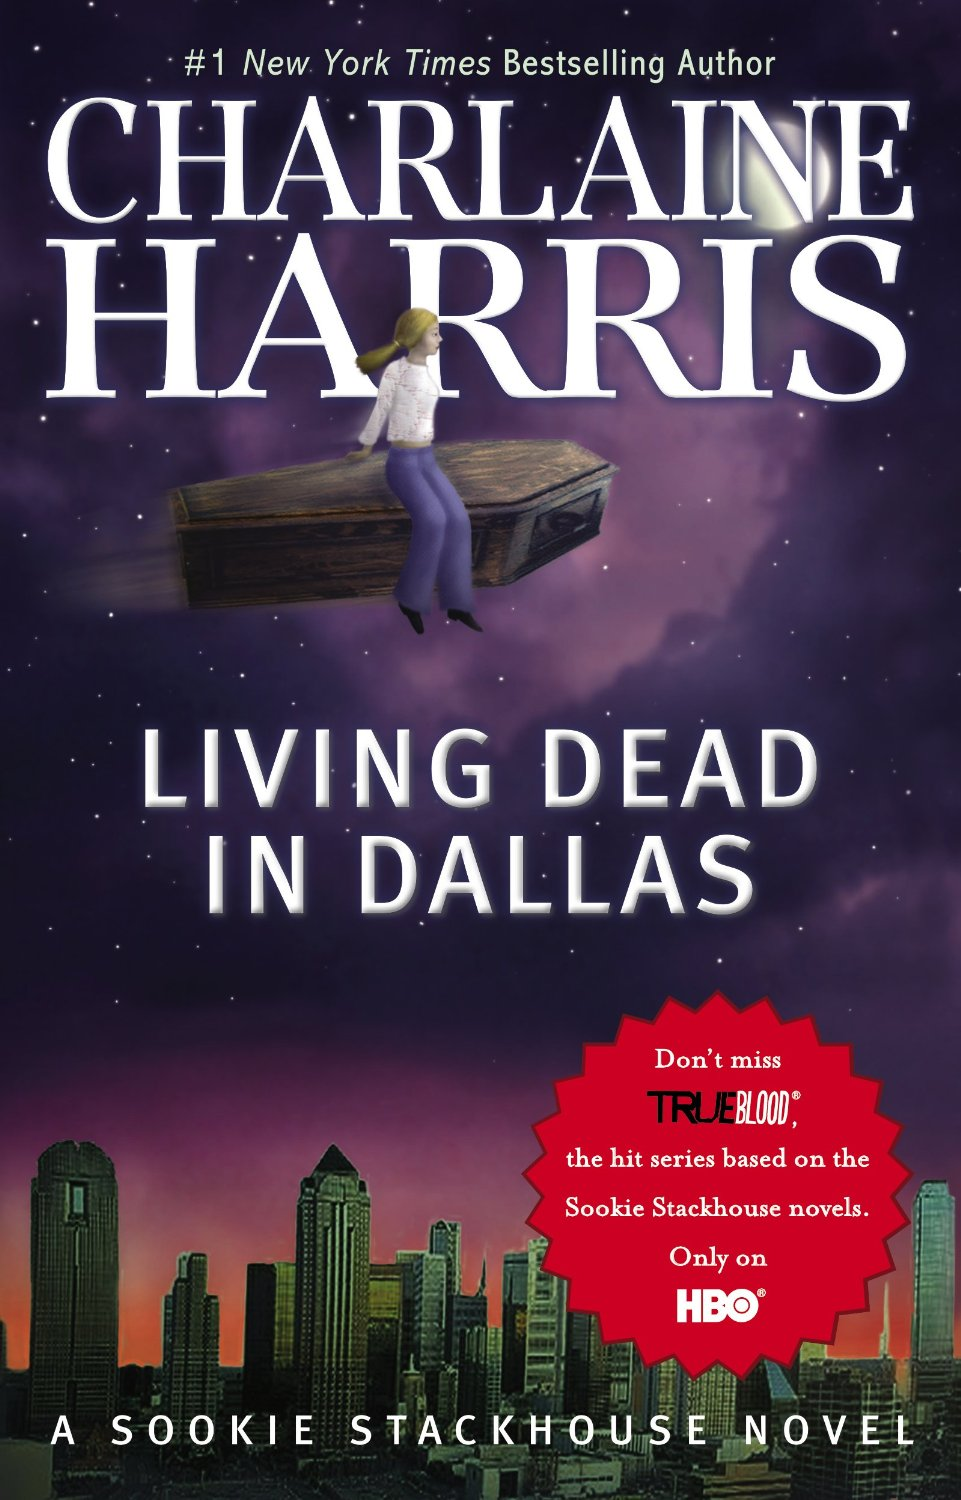 [READ ONLINE FREE] Series Sookie Stackhouse. All books by ...